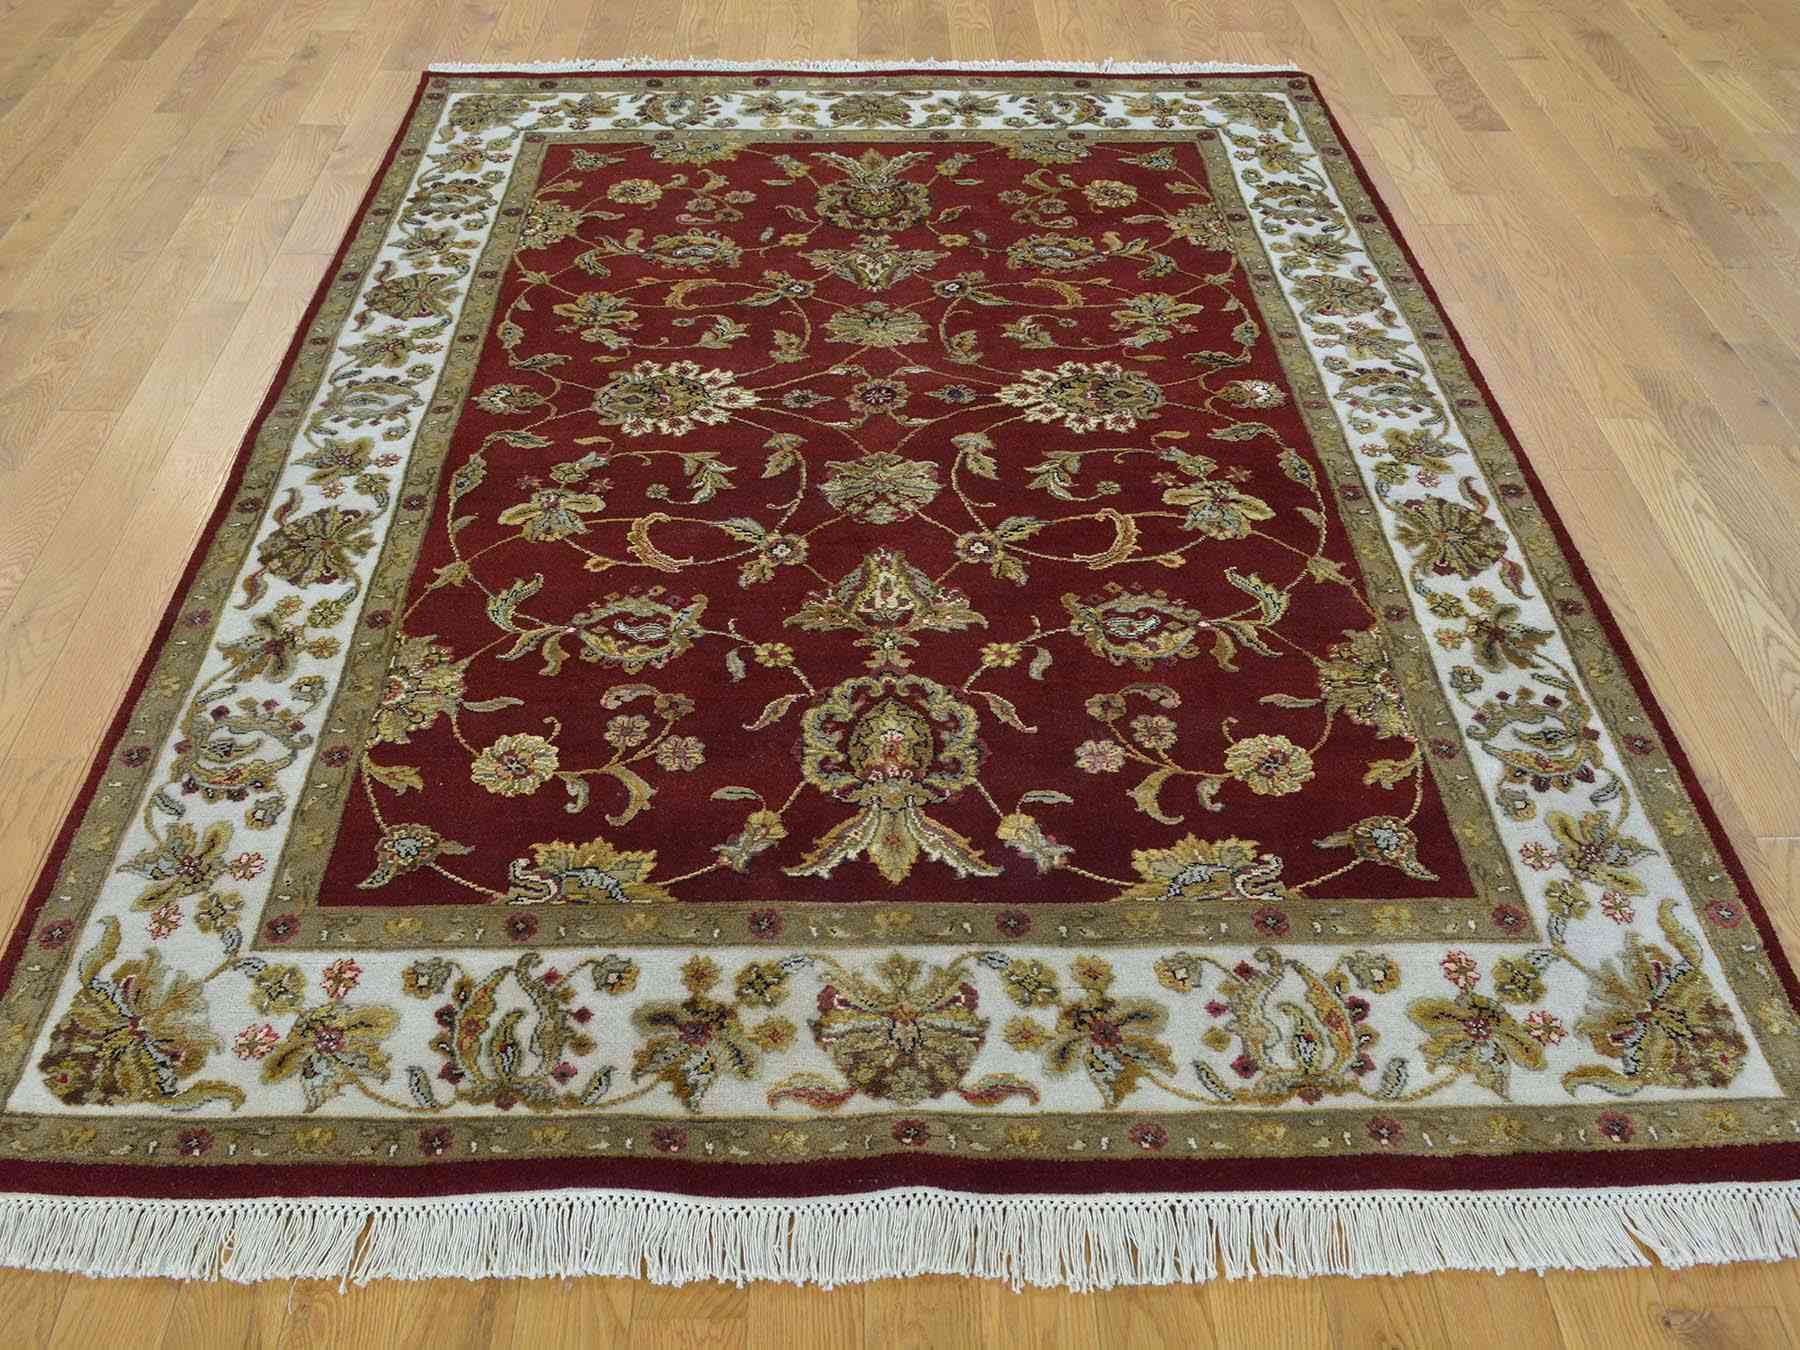 Rajasthan Hand-Knotted Carpets